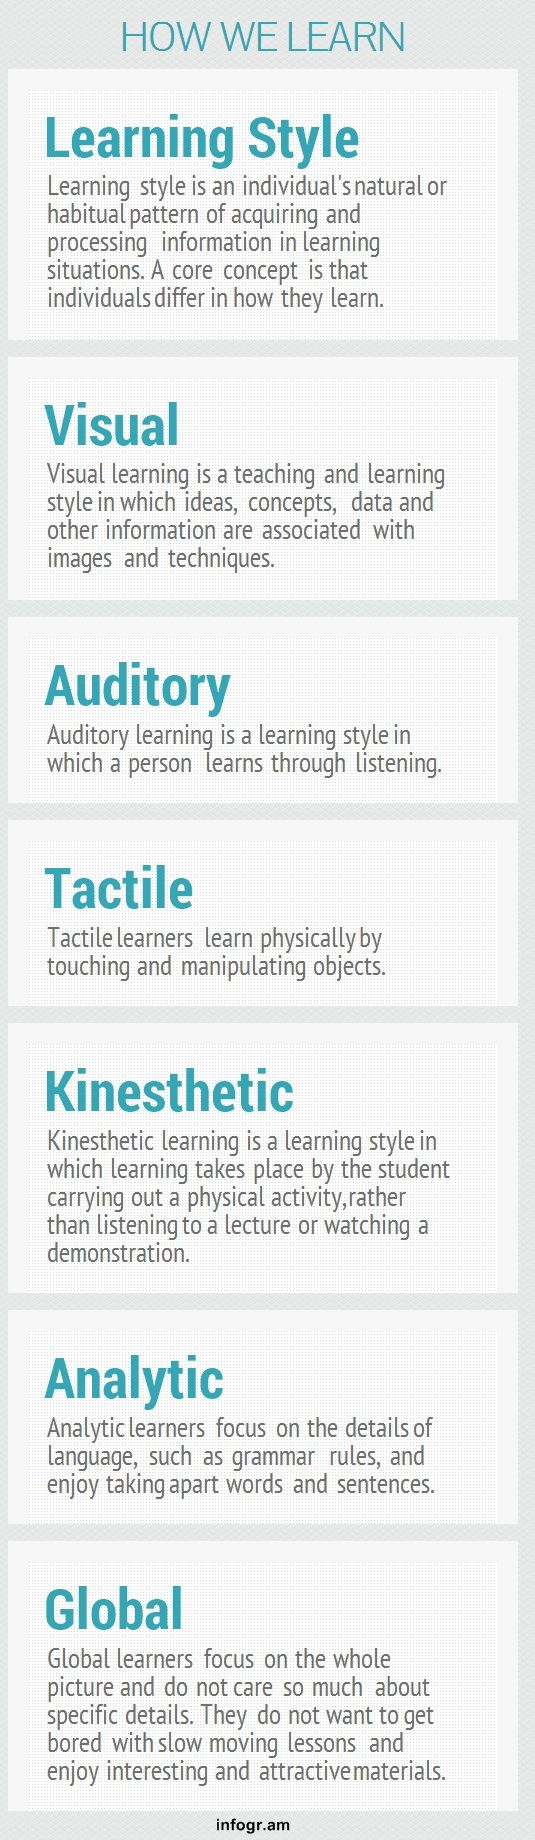 A comparison of visual learners and auditory learners